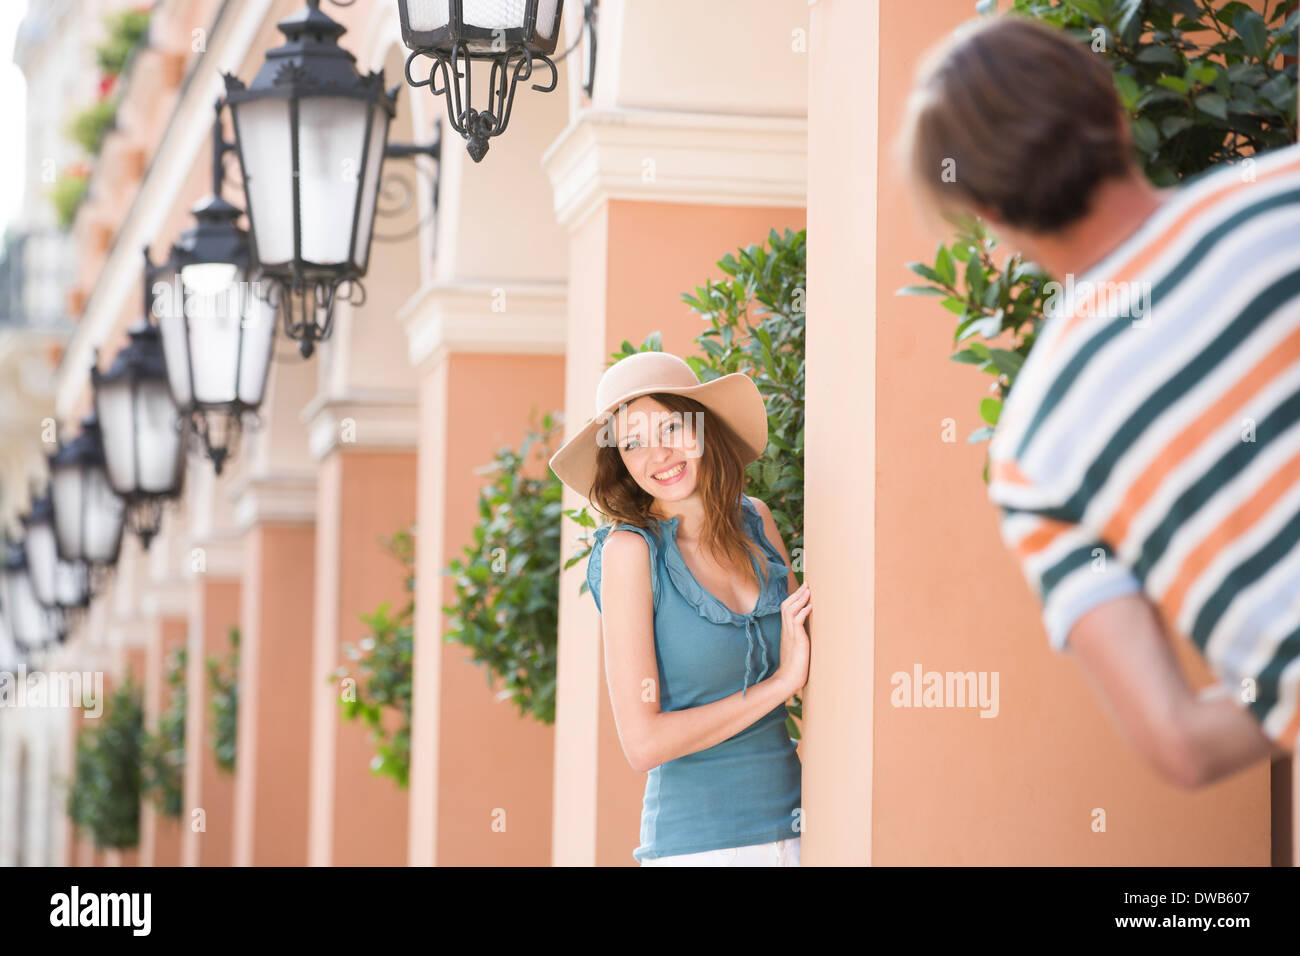 Happy woman playing hide-and-seek with man amongst pillars - Stock Image